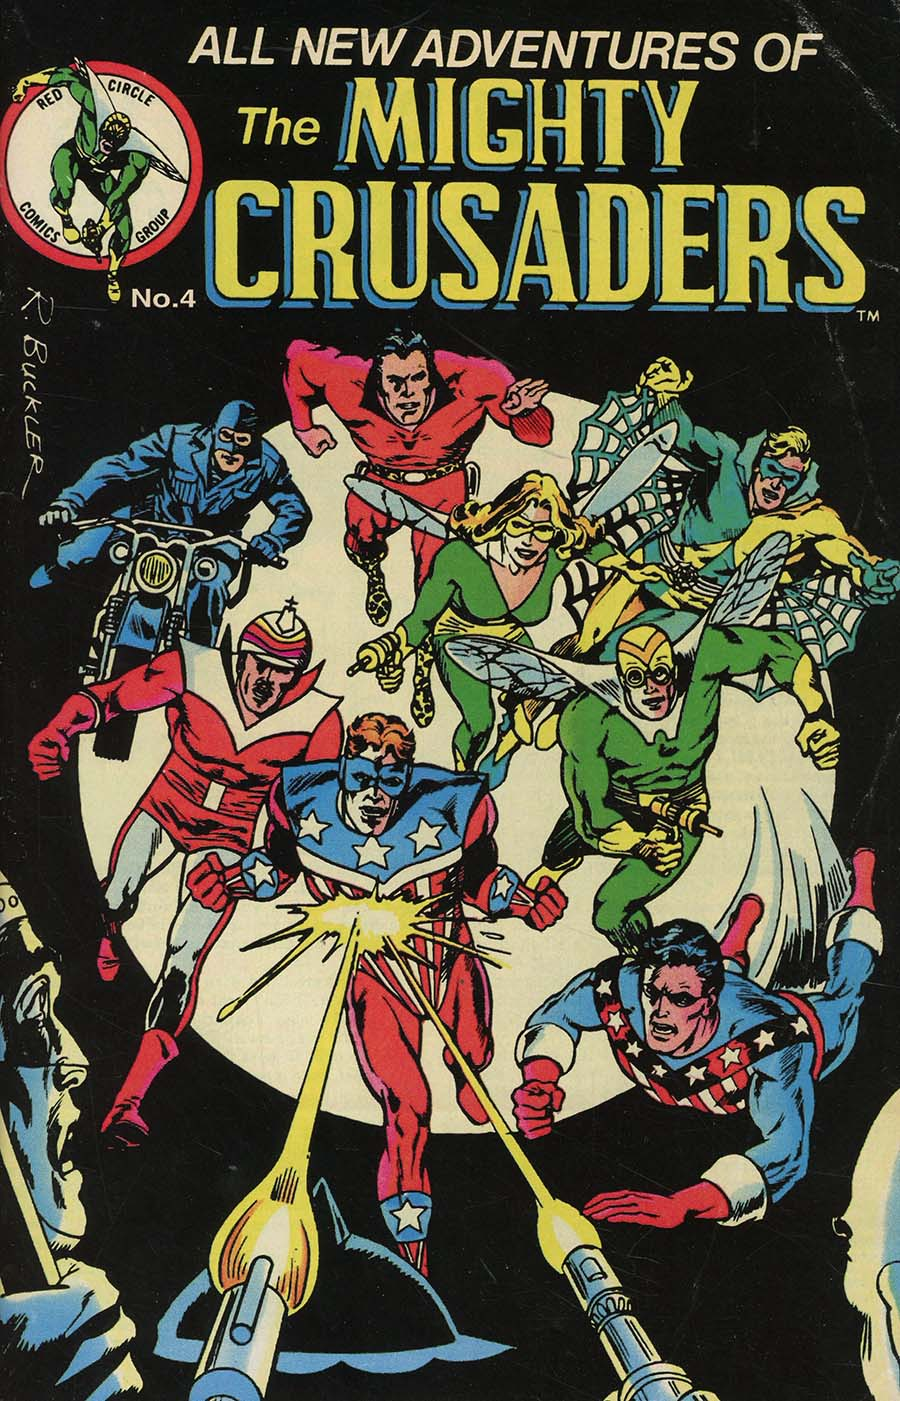 Mighty Crusaders Vol 4 #4 Cover B Variant Rich Buckler Red Circle Cover